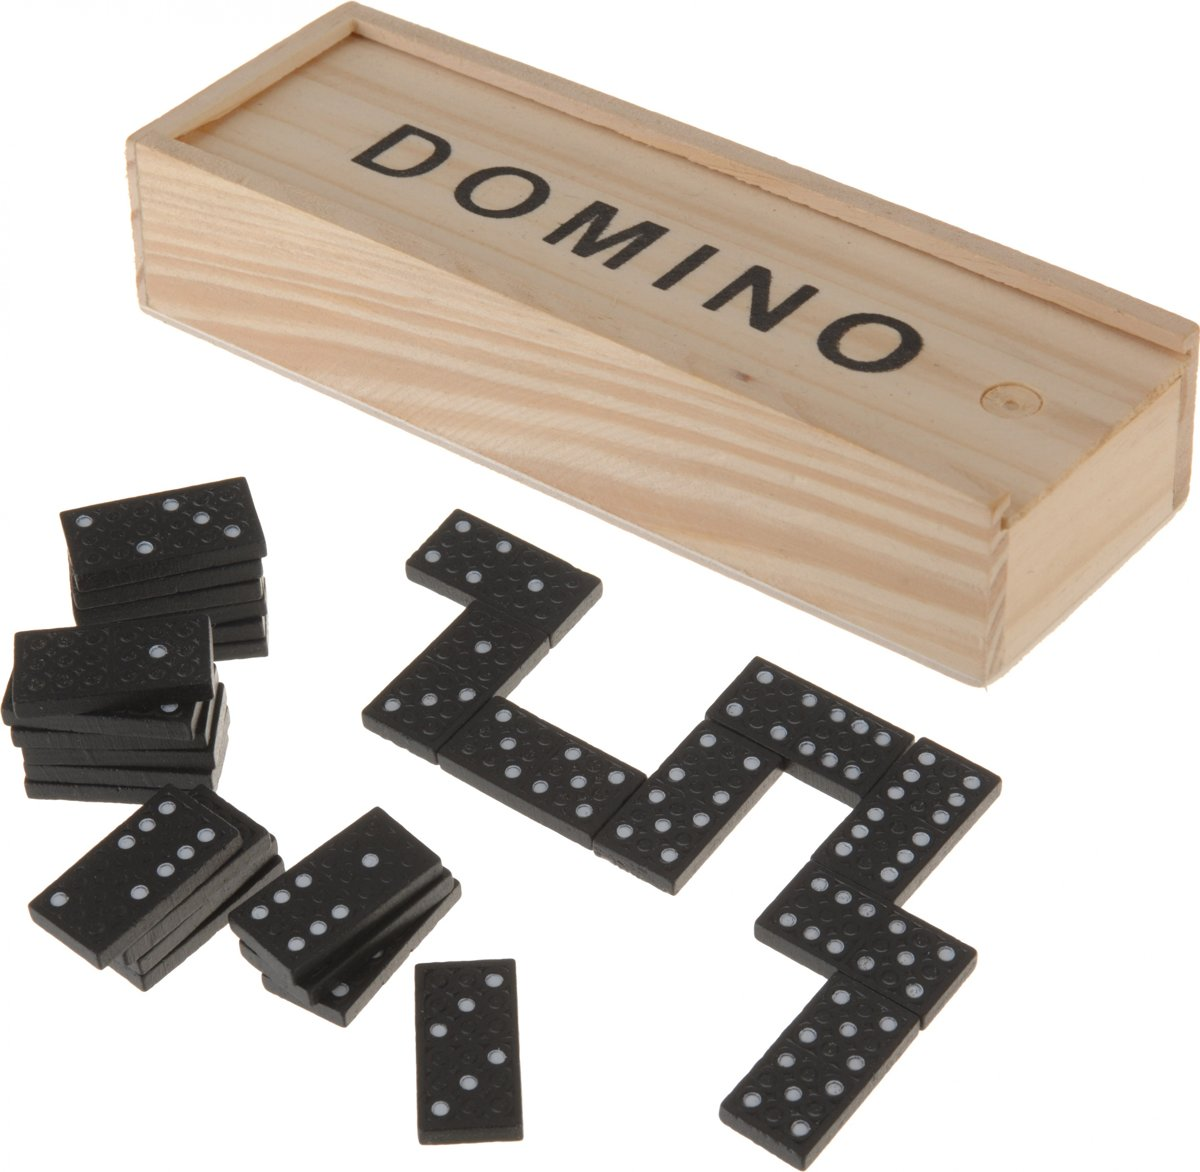 Free And Easy Domino 28 Stenen In Houten Kist Zwart